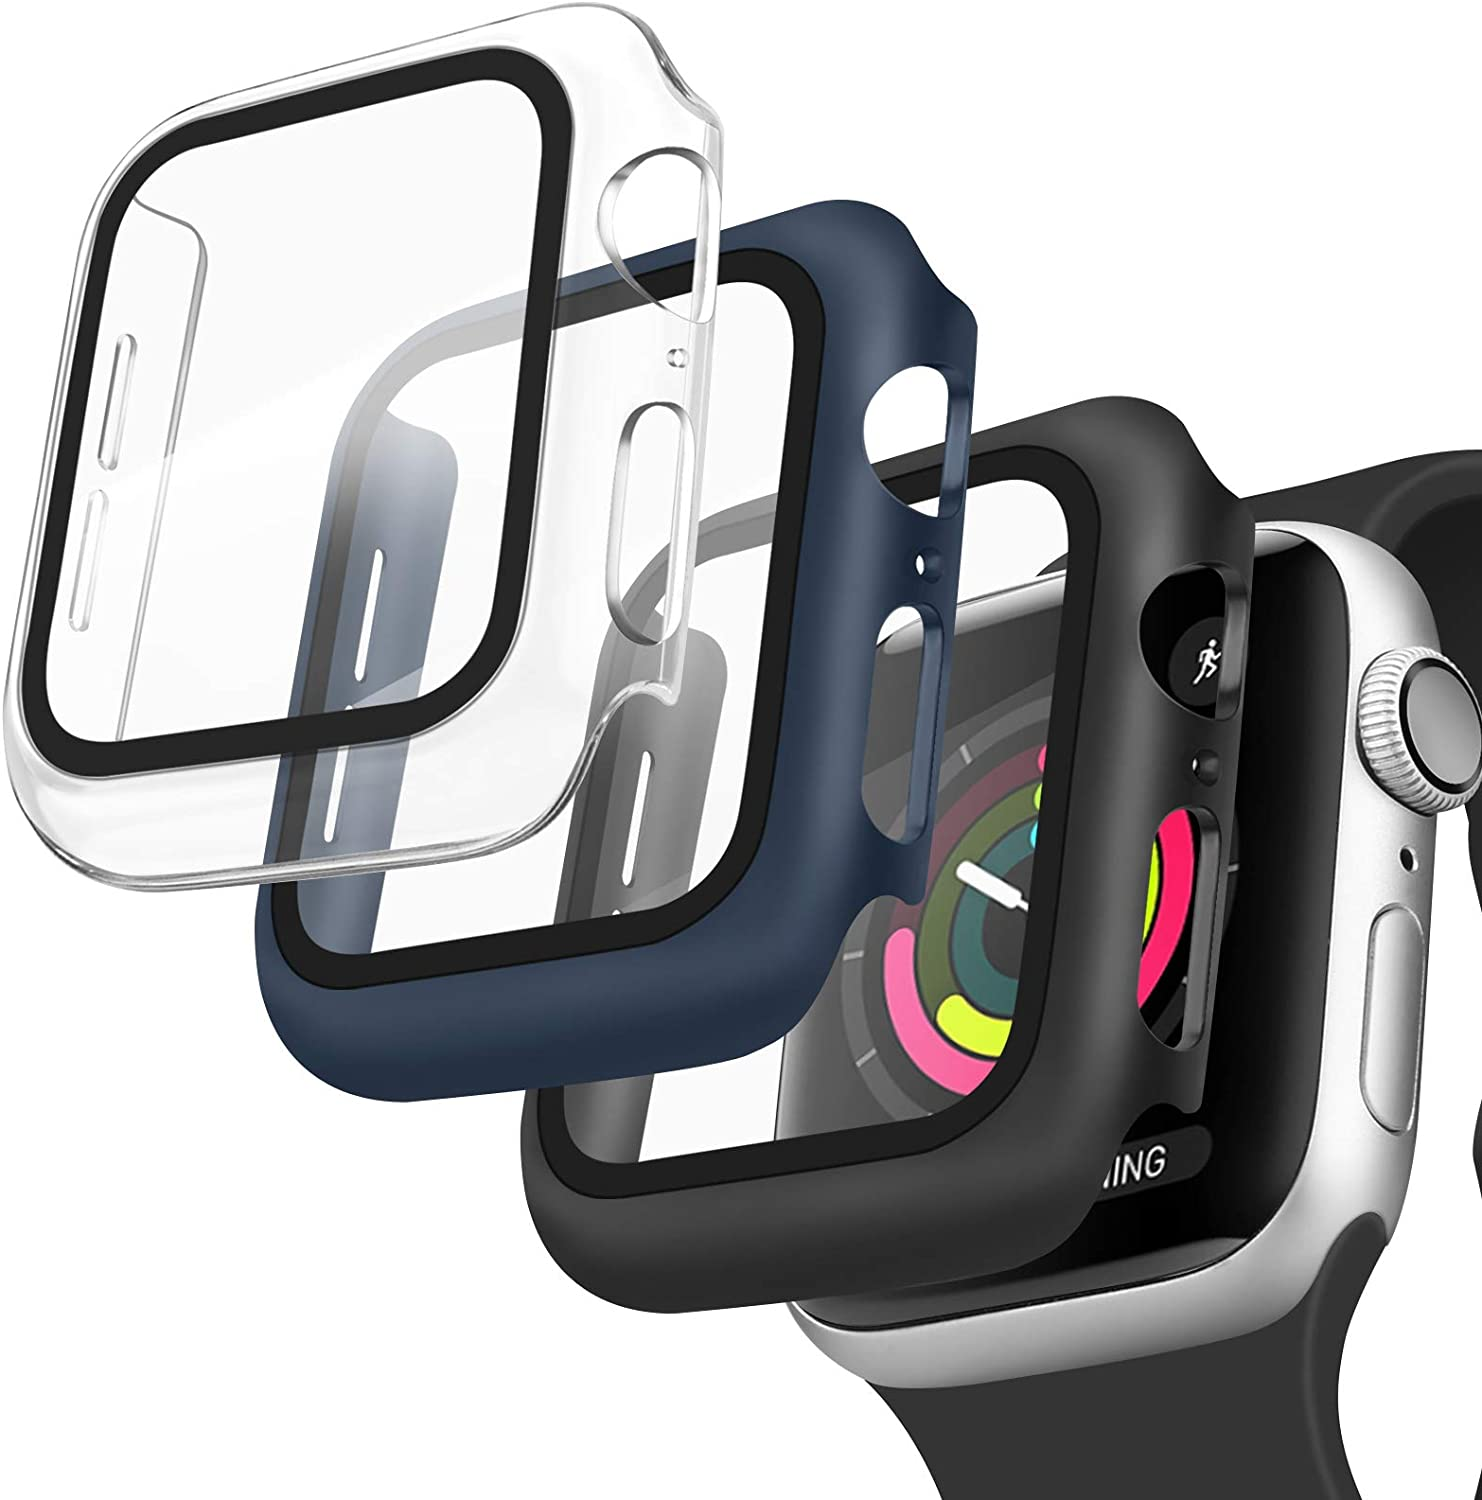 [3 Pack] Oumida 42mm 38mm Case Compatible with Apple Watch Series 3 2 1 for Women Men, iWatch Cases 42mm 38mm Hard Cover with Tempered Glass Screen Protector (Clear, Black, Navy Blue, 42mm)